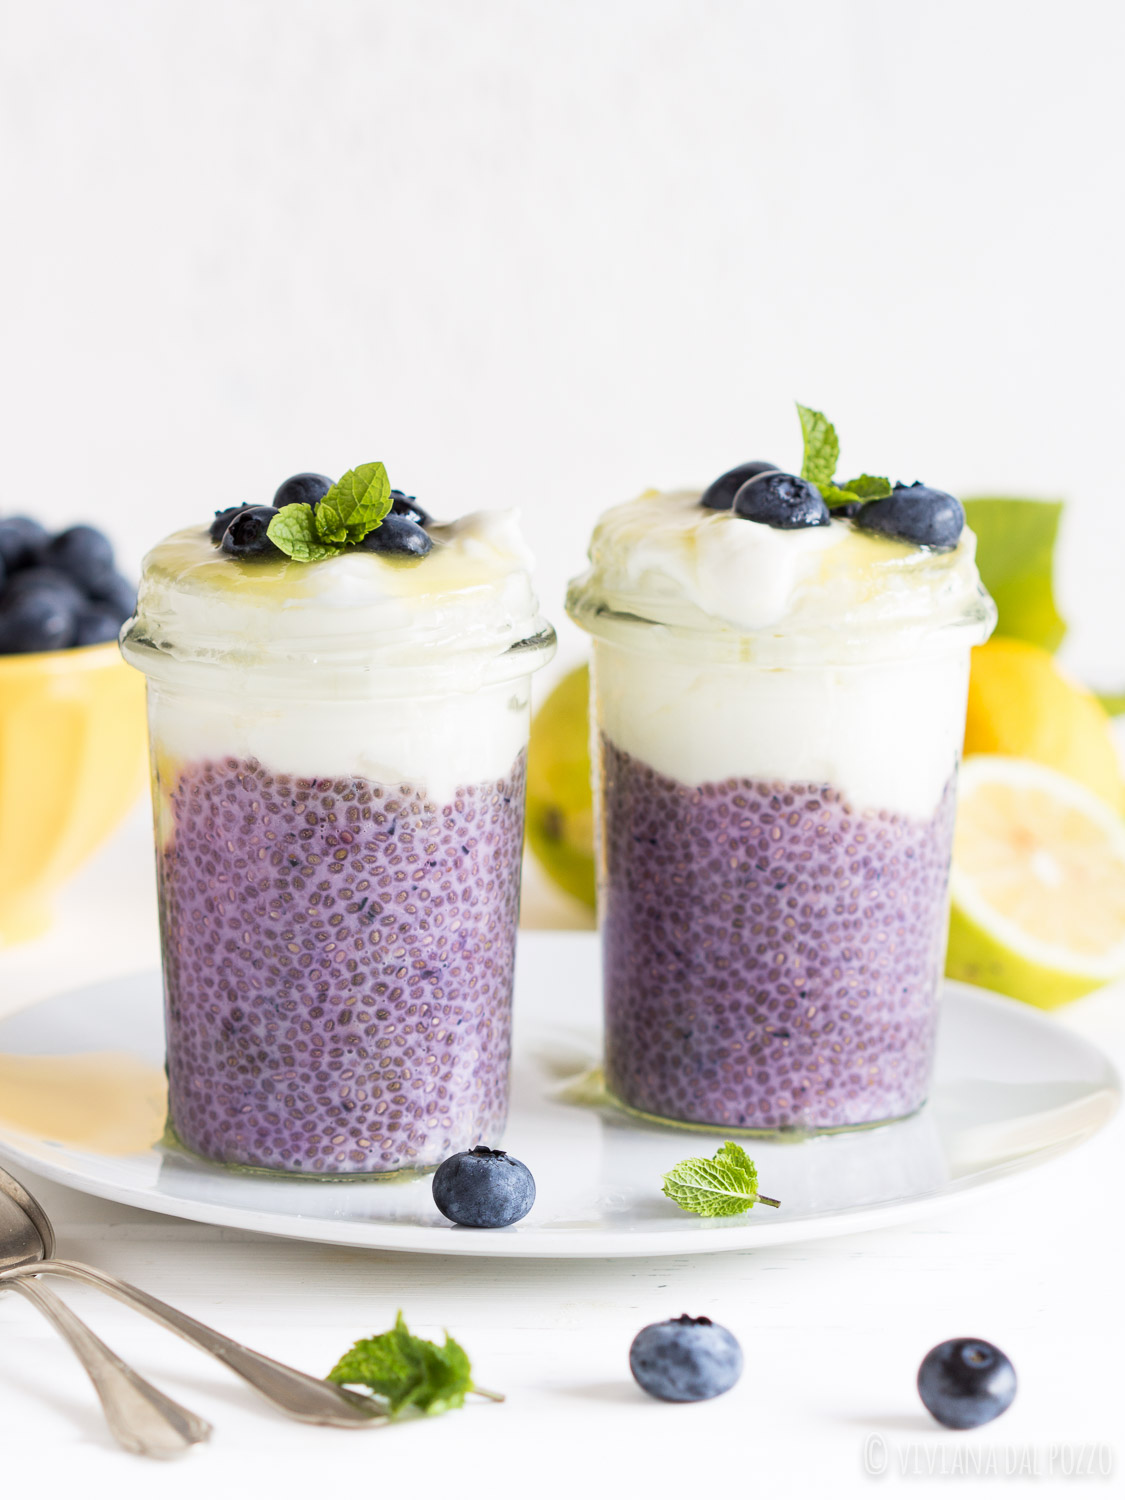 Chia pudding con yogurt e mirtilli